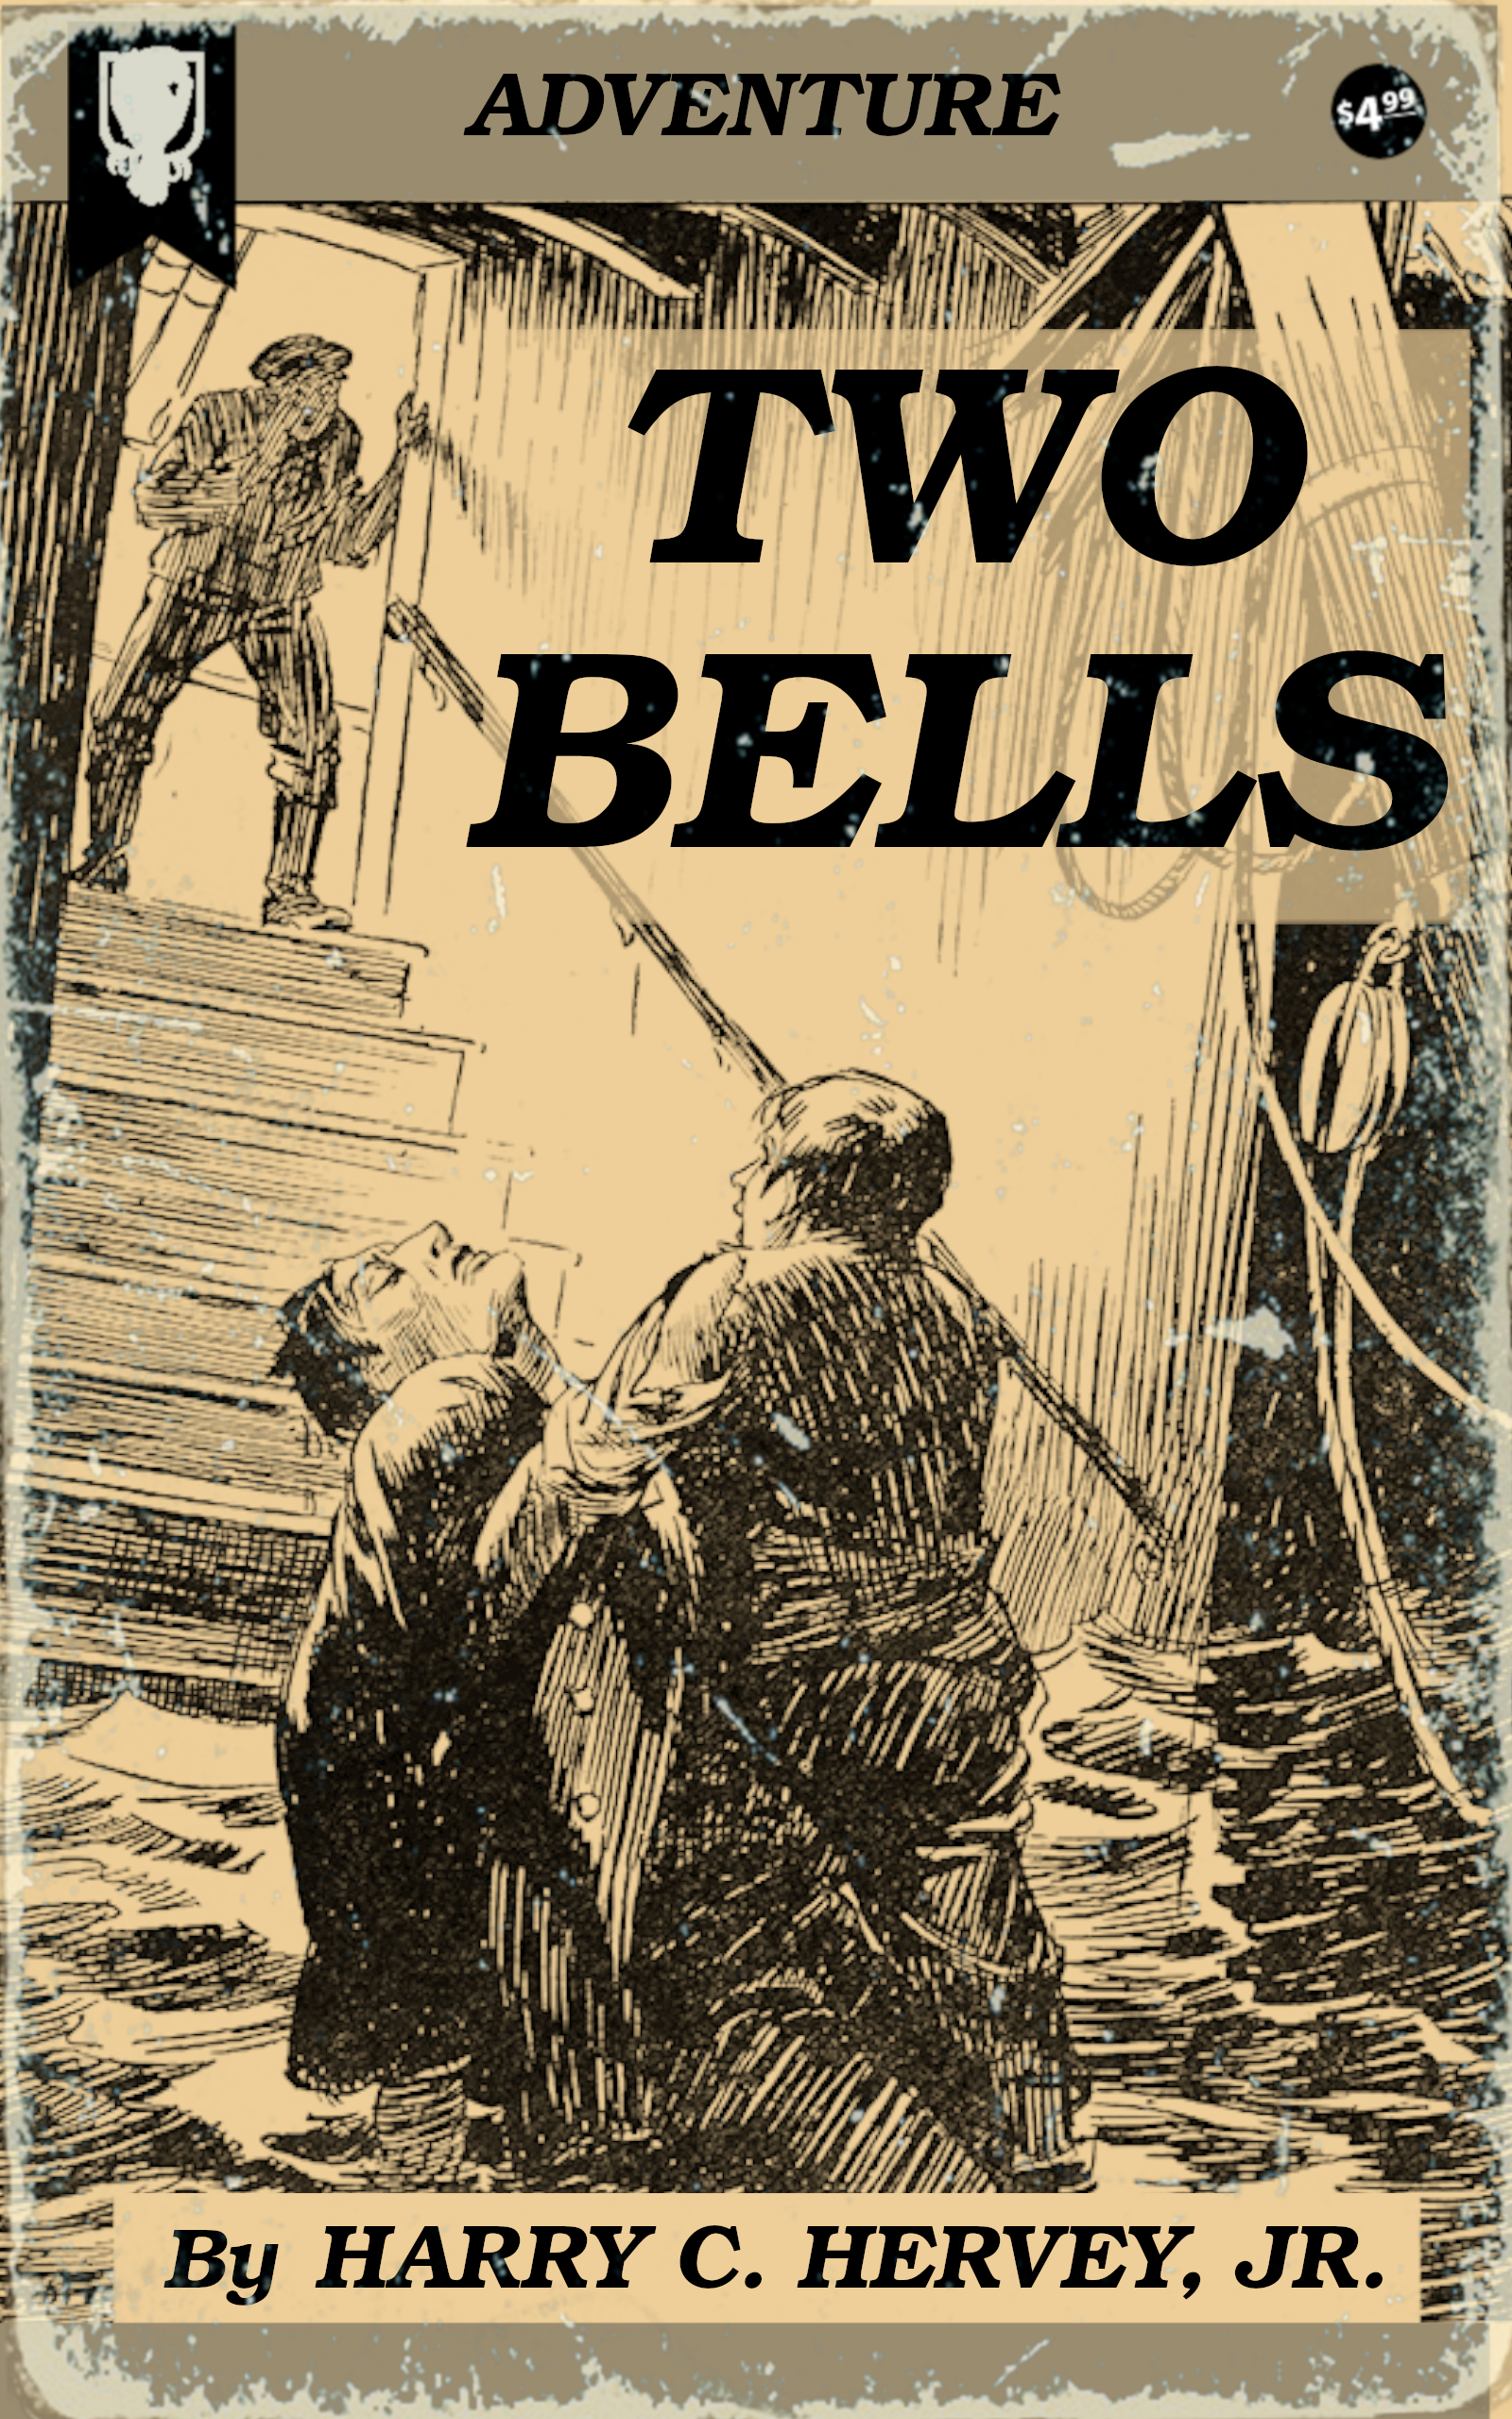 Two Bells by Harry C. Hervey, Jr.